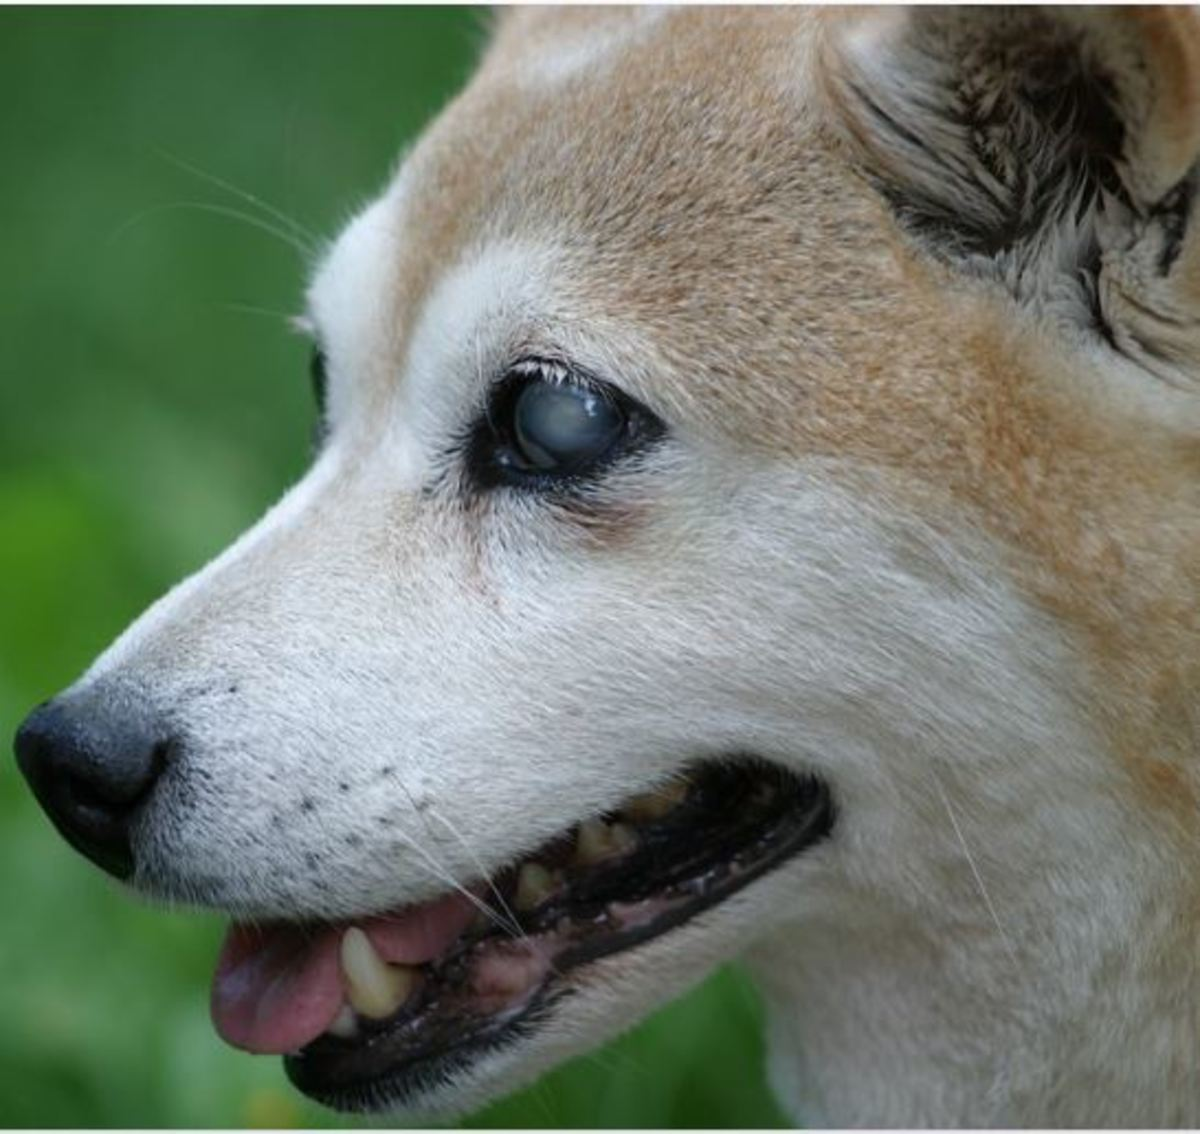 Causes of sudden blindness in dogs